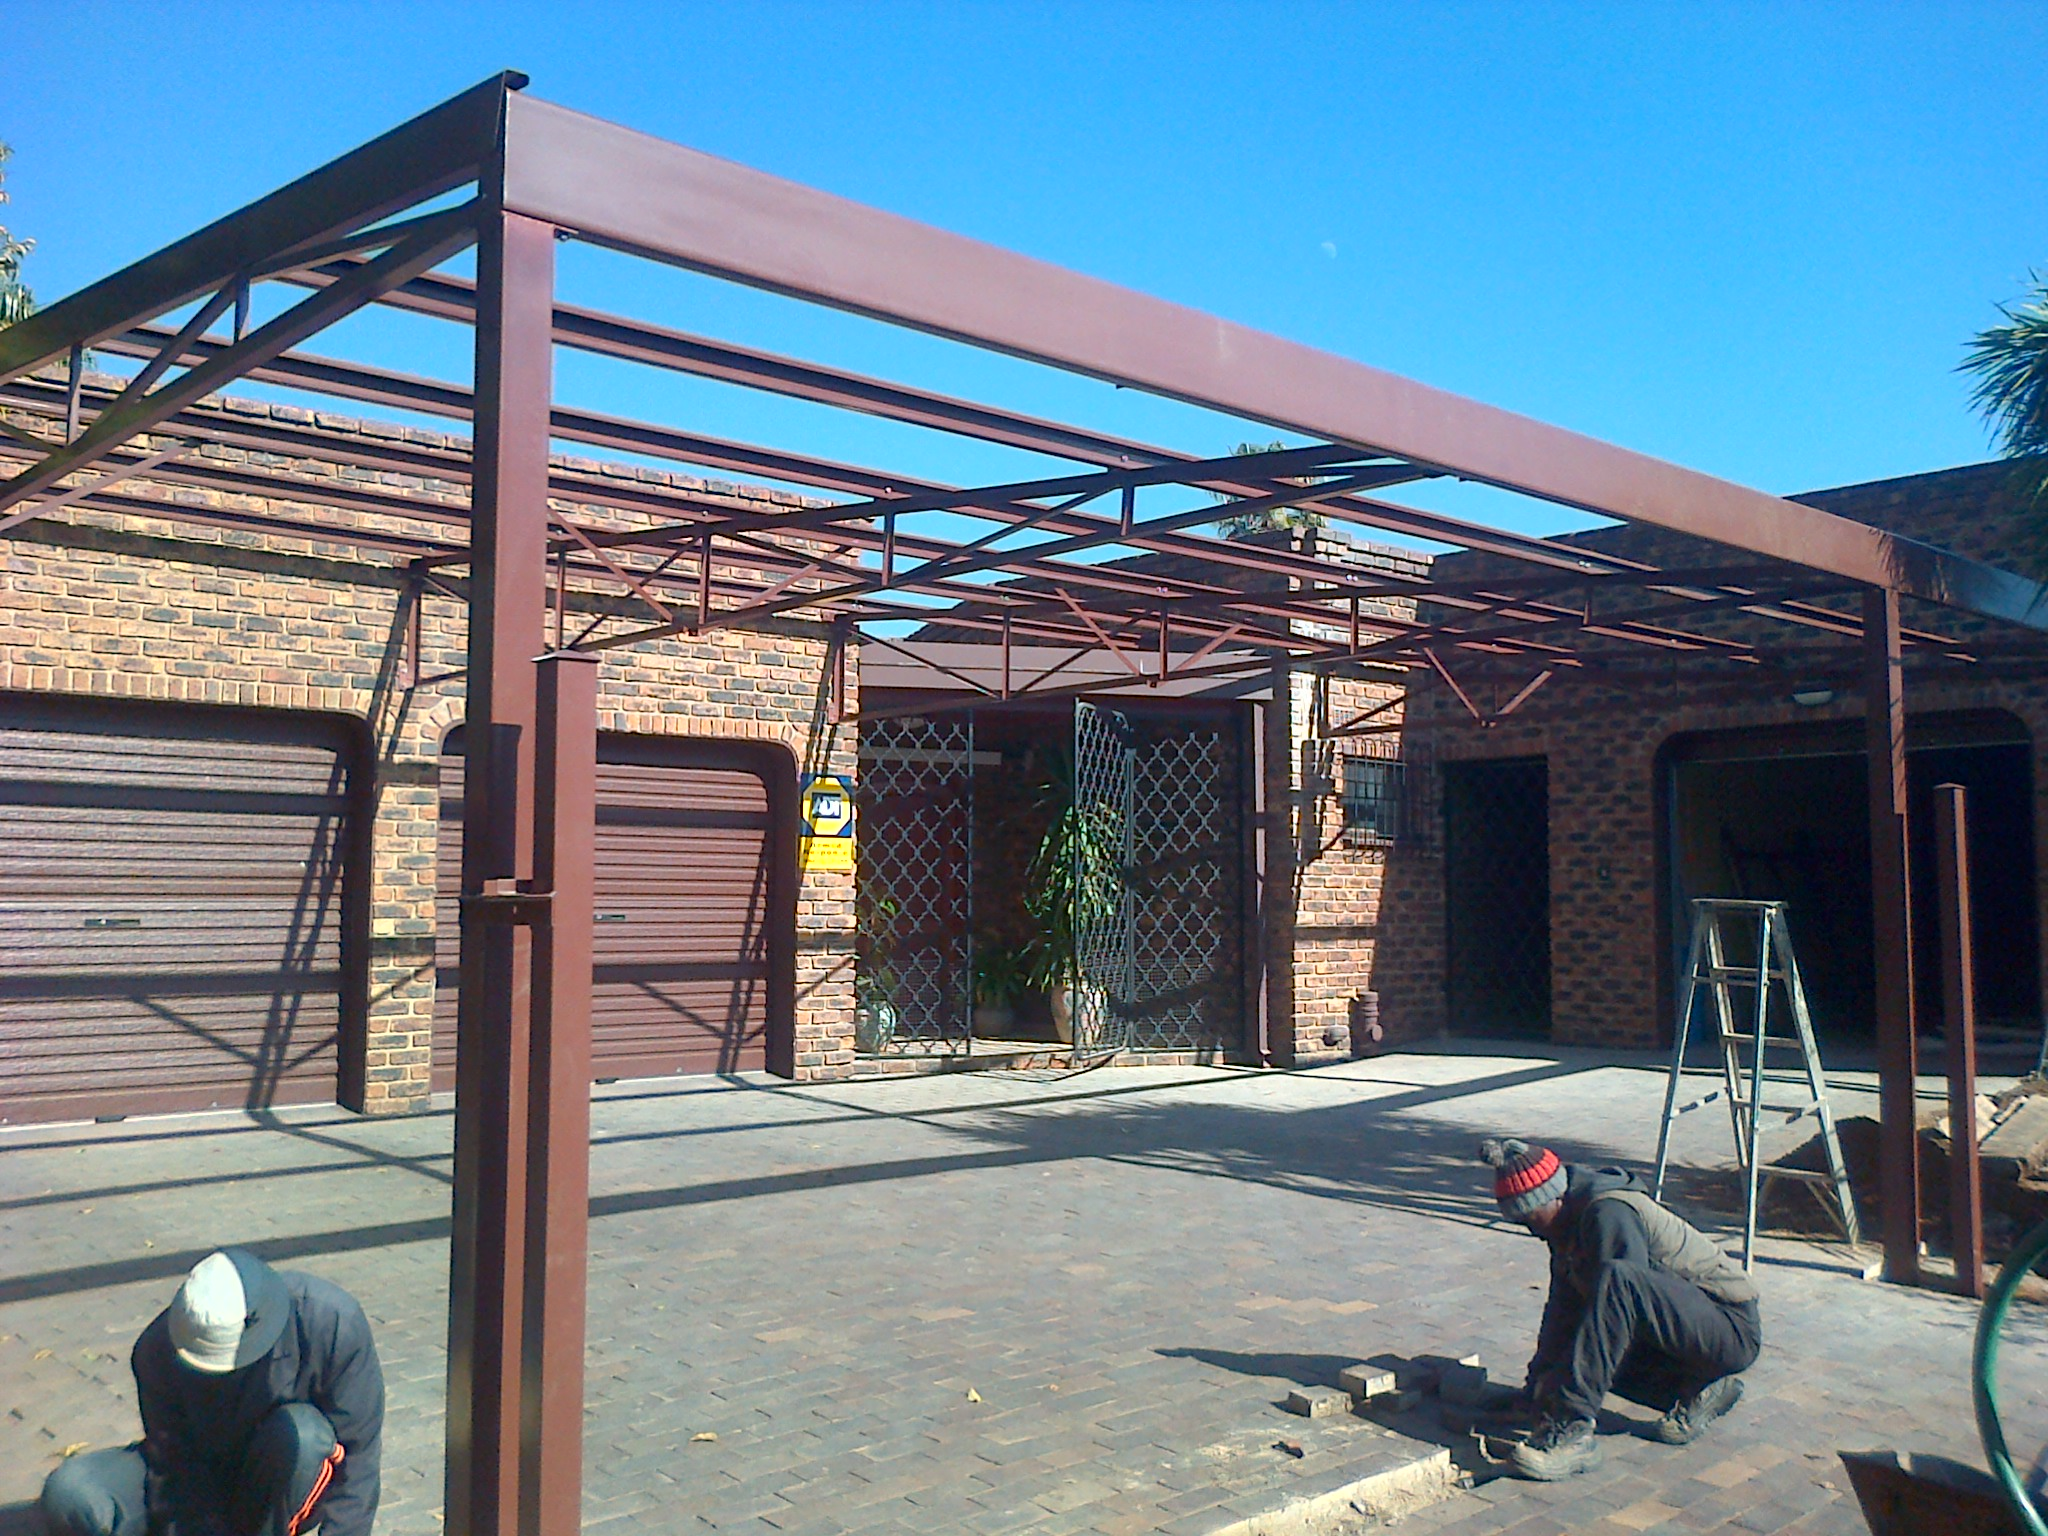 carport awnings sydney carports and awnings carport and. Black Bedroom Furniture Sets. Home Design Ideas